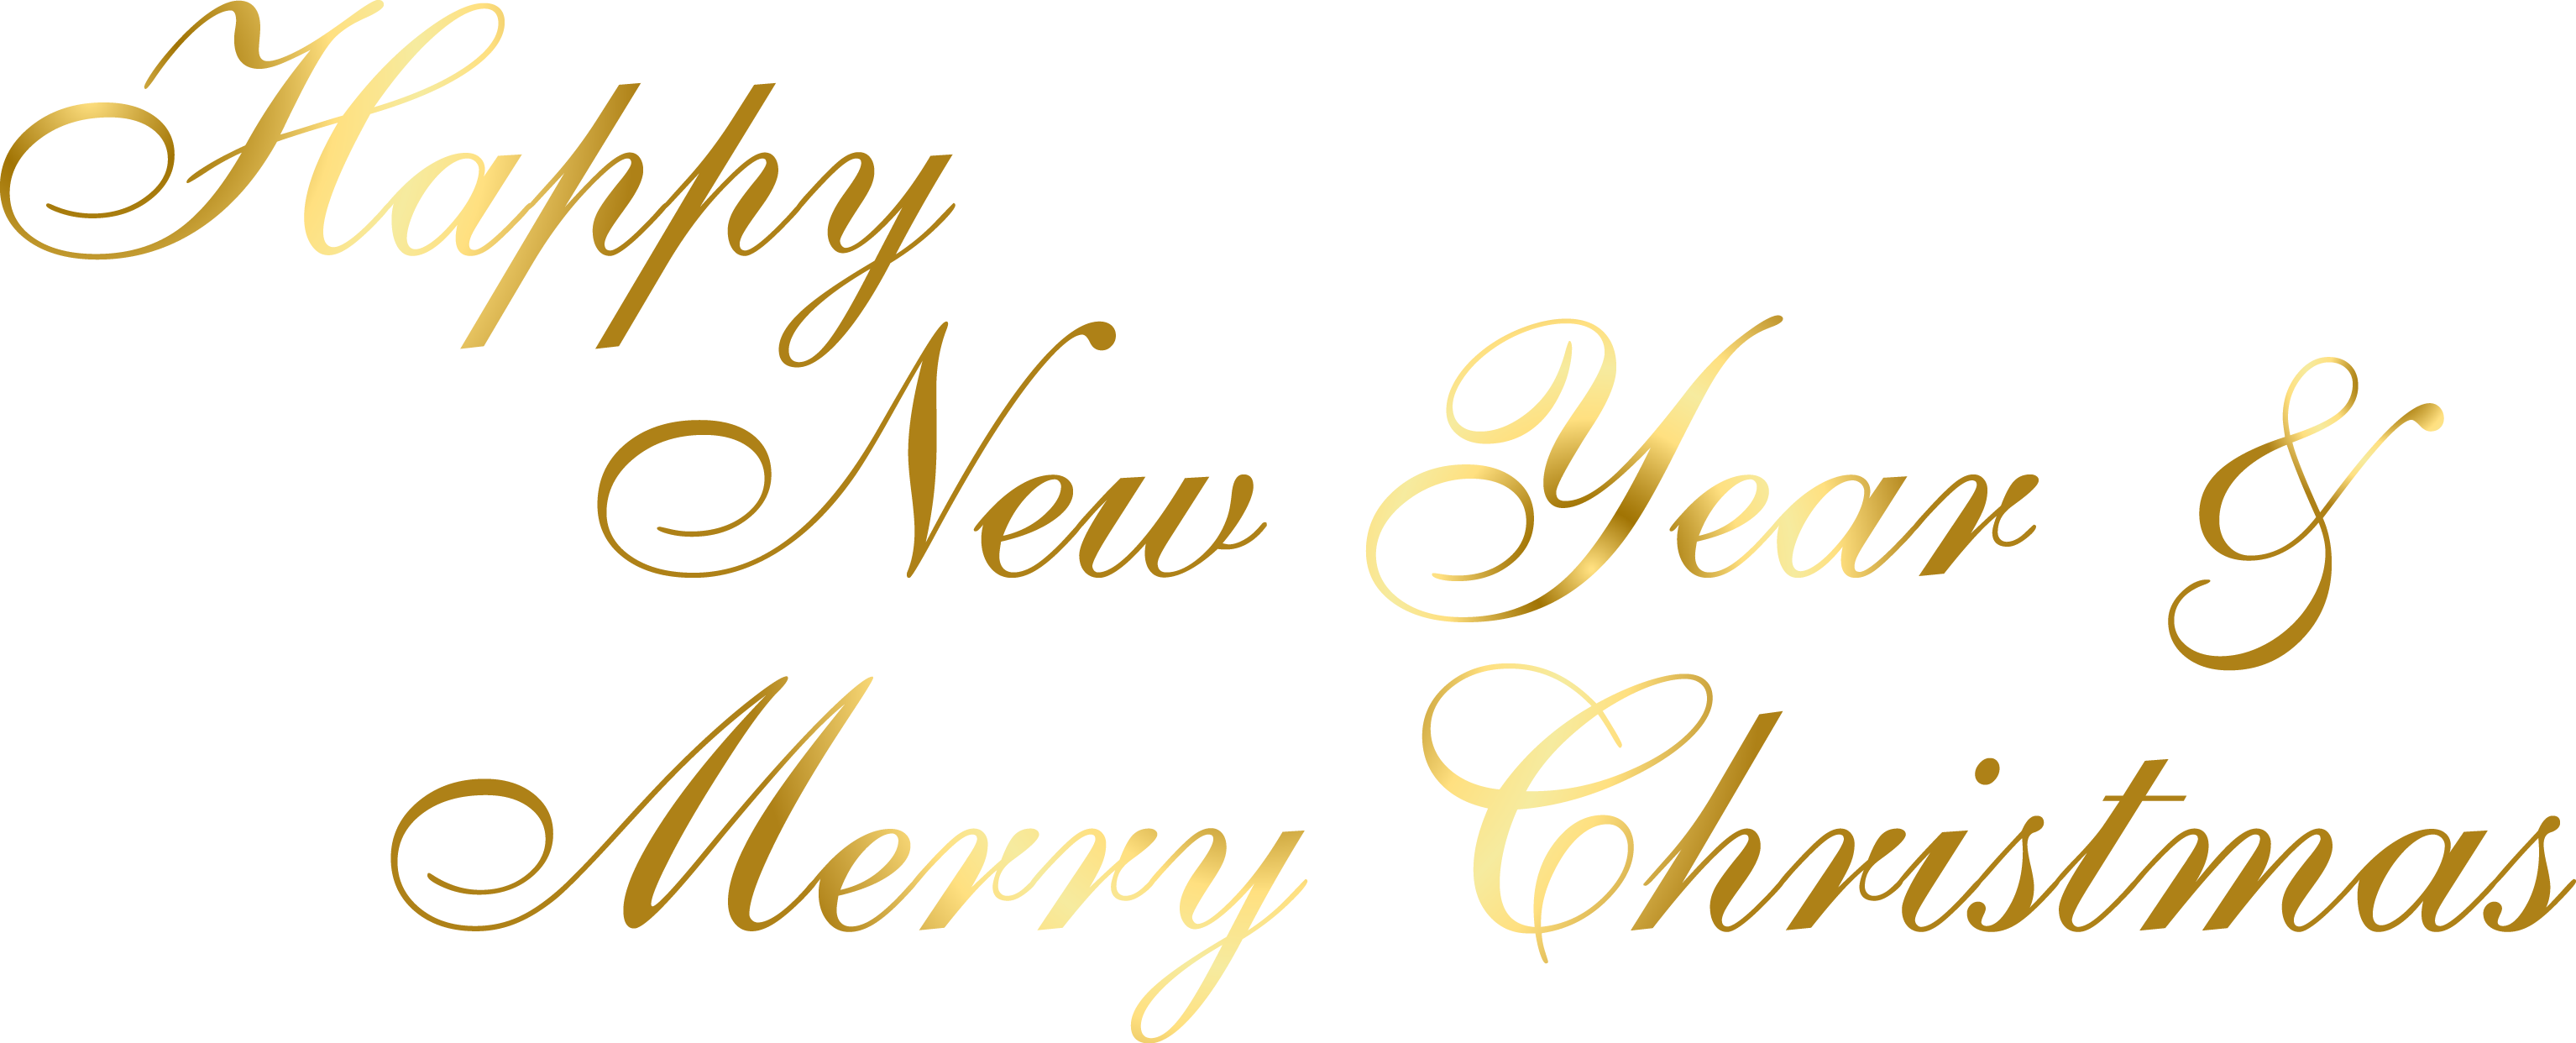 Merry christmas and happy new year clipart free vector royalty free Happy New Year And Merry Christmas Png - 6368 - TransparentPNG vector royalty free